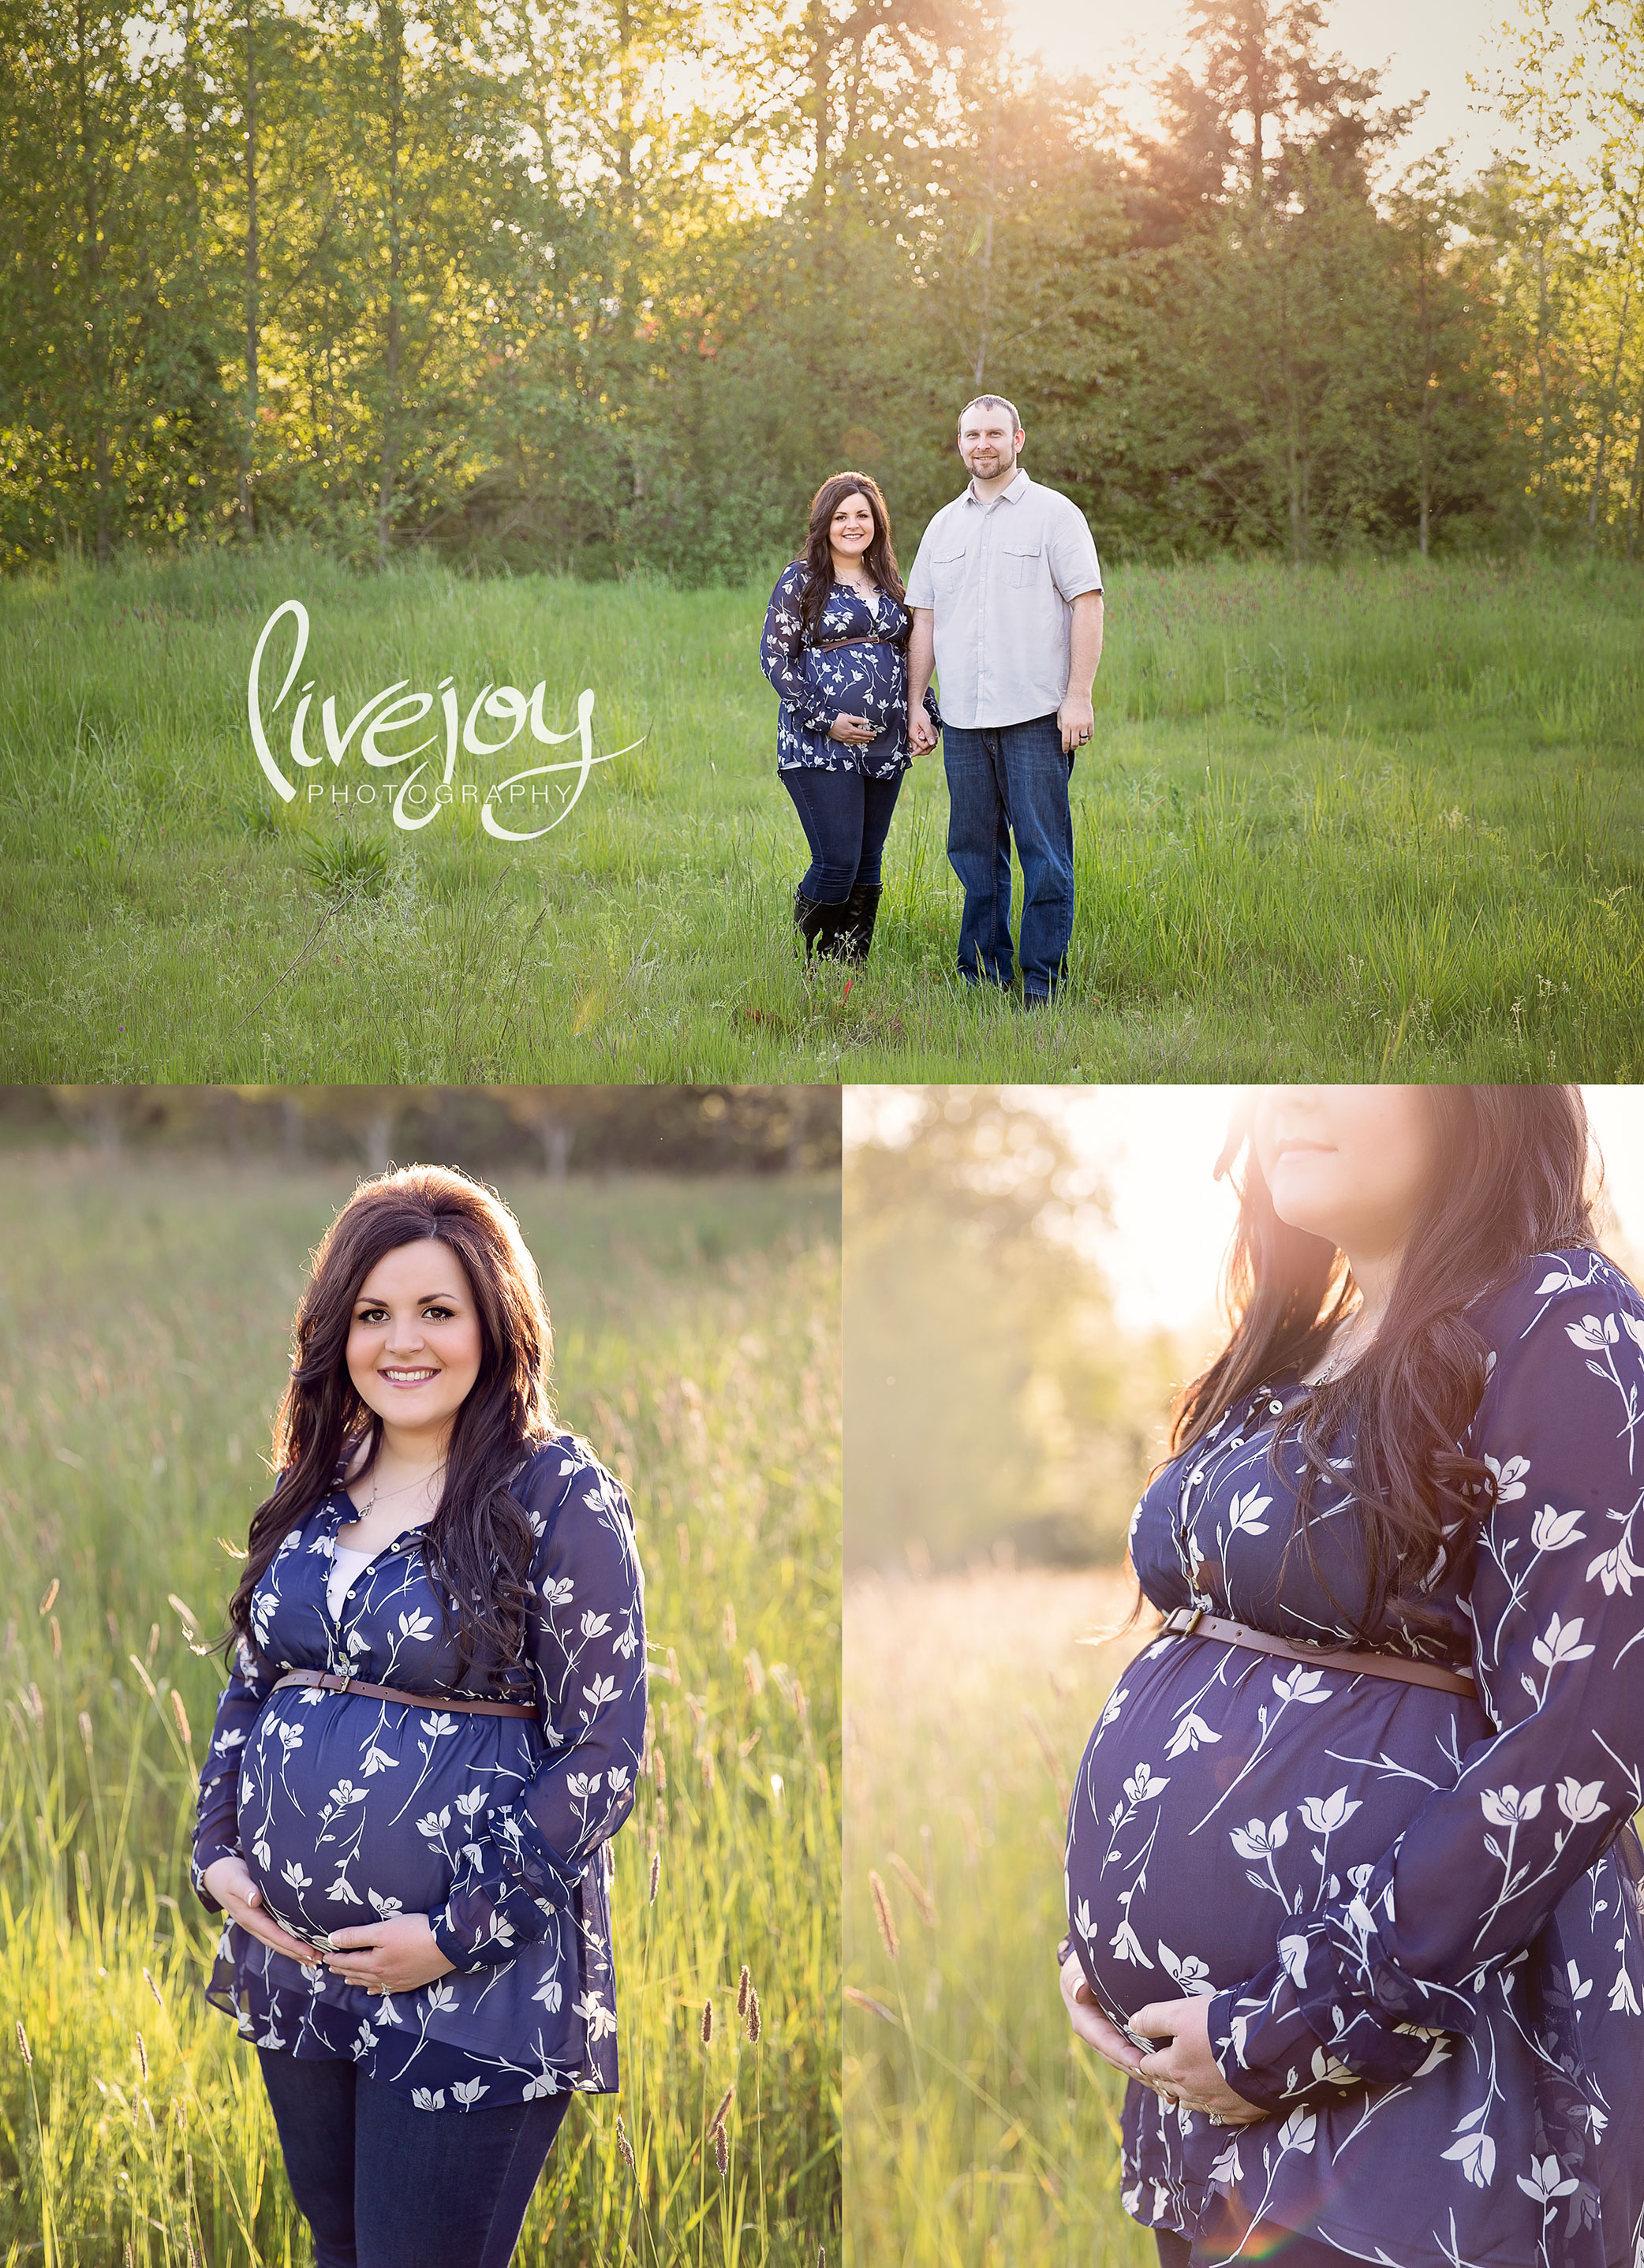 Maternity and Pregnancy Images | Oregon | LiveJoy Photography